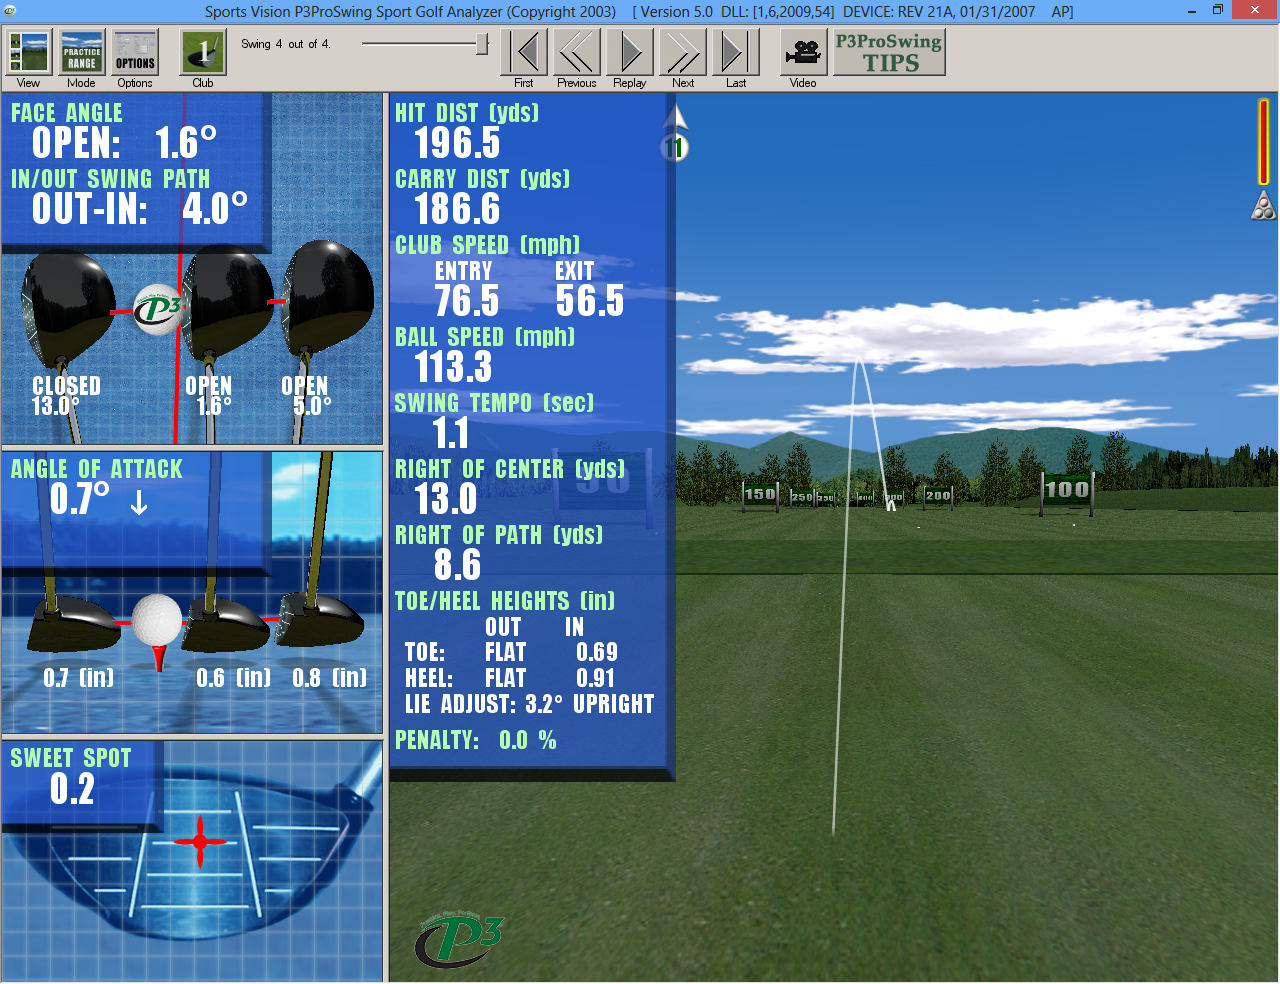 P3 GOLF SIMULATOR